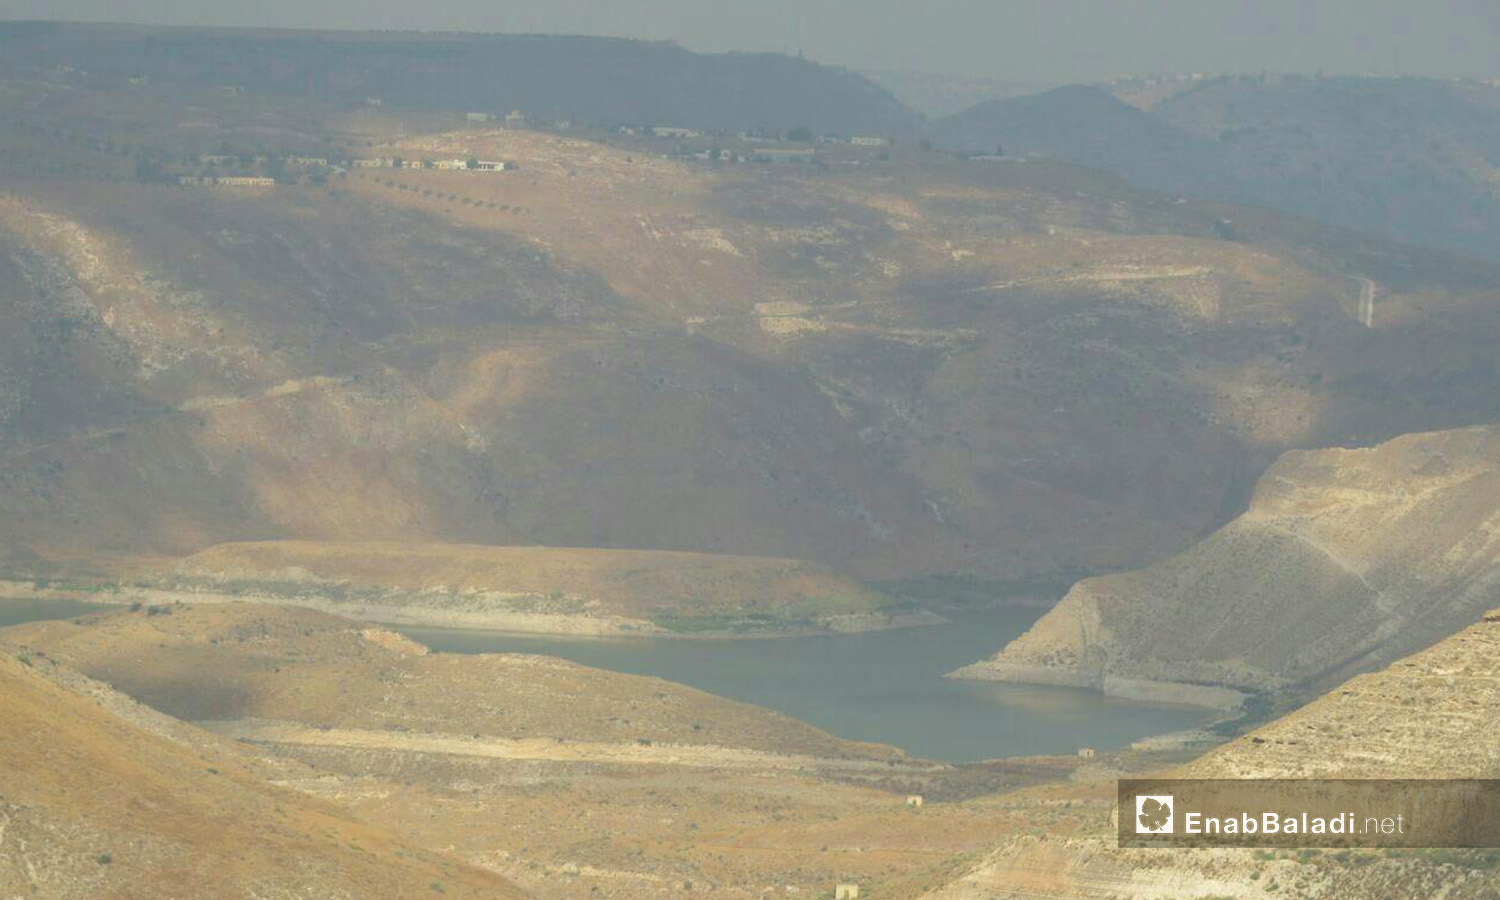 An image of the Yarmouk Valley taken from Zizoun town in western Daraa countryside, in which the al-Wehda Dam appears – 07 August 2020 (Enab Baladi / Halim Mohammad)